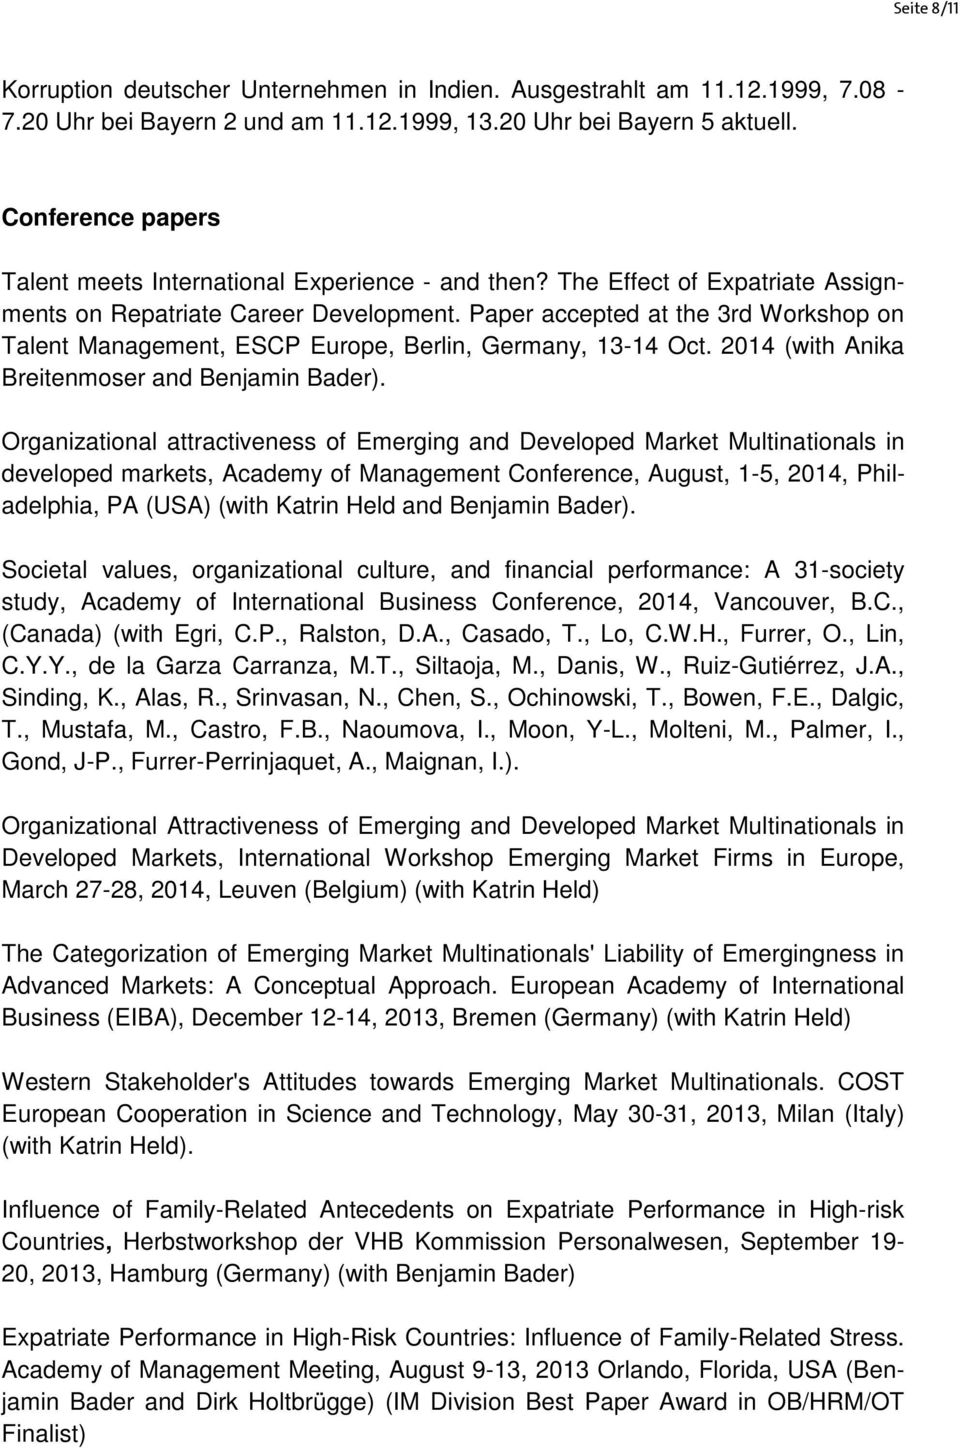 Paper accepted at the 3rd Workshop on Talent Management, ESCP Europe, Berlin, Germany, 13-14 Oct. 2014 (with Anika Breitenmoser and Benjamin Bader).